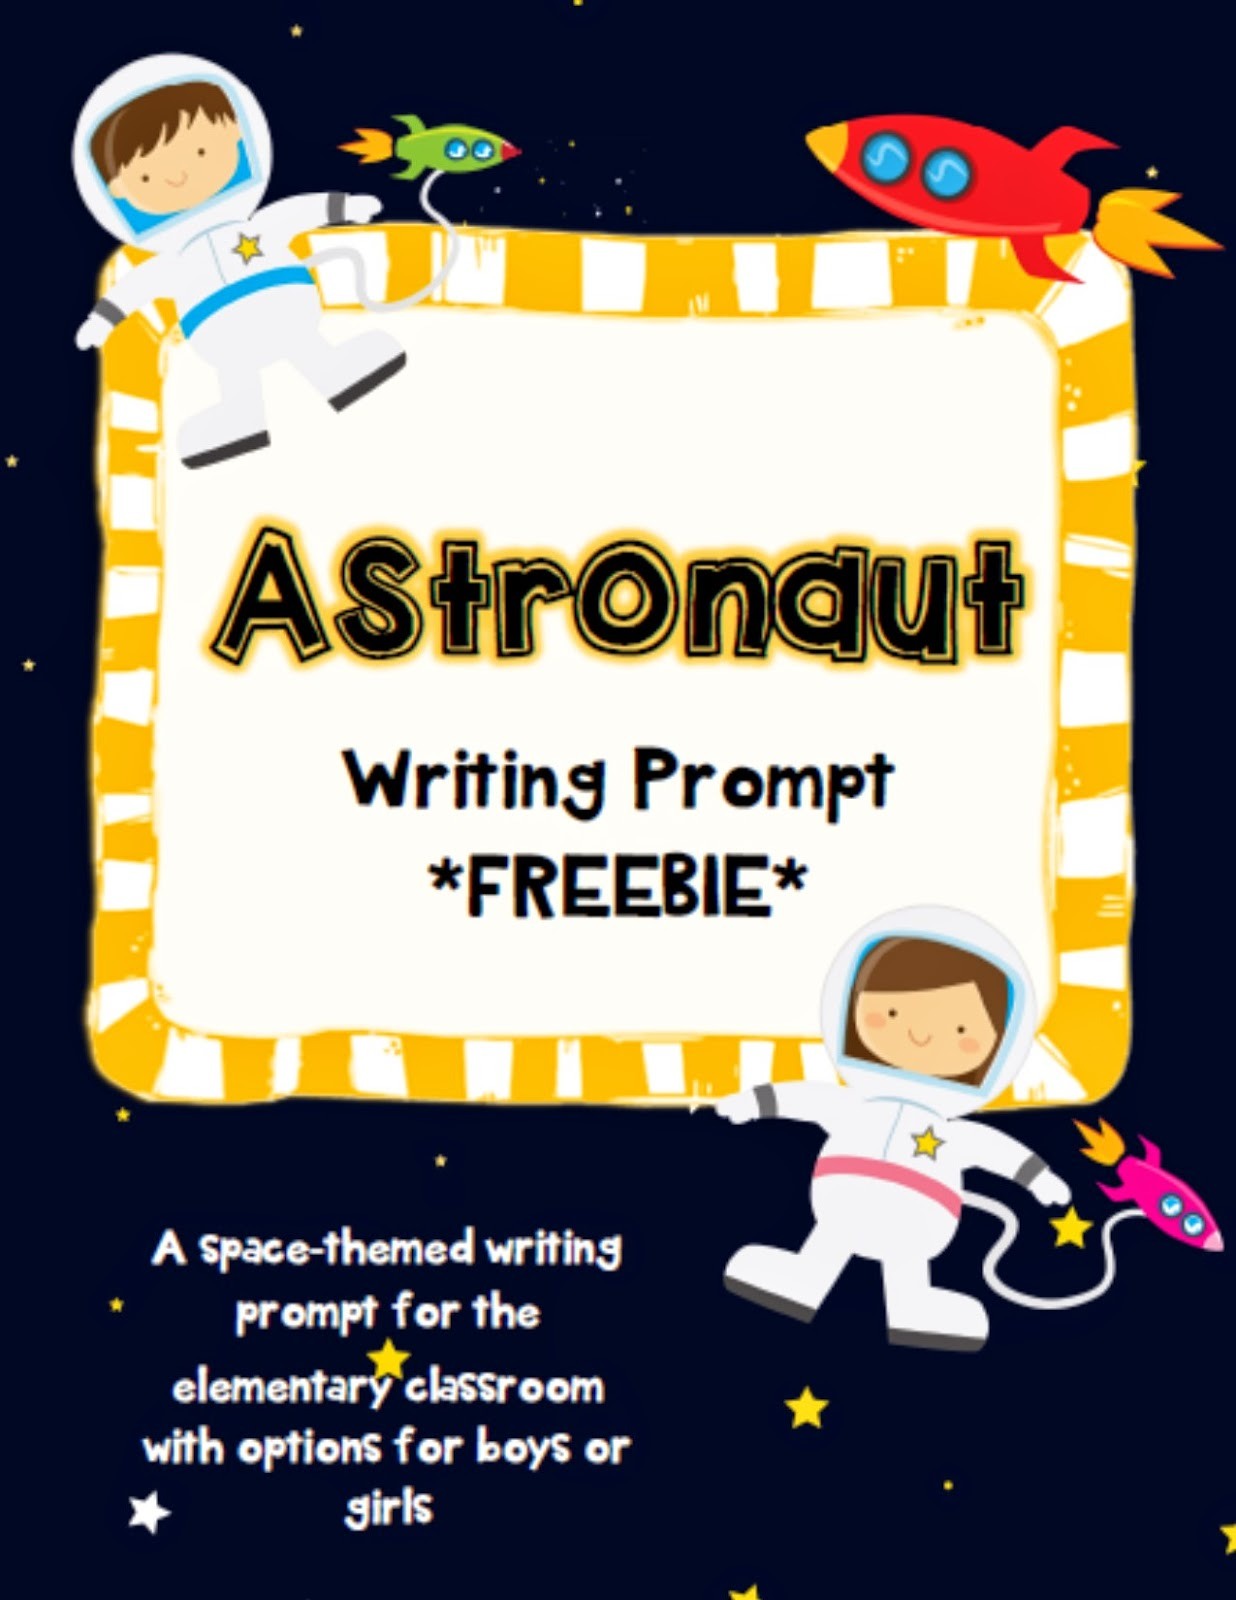 http://www.teacherspayteachers.com/Product/If-I-Was-An-Astronaut-writing-prompt-freebie-1412318